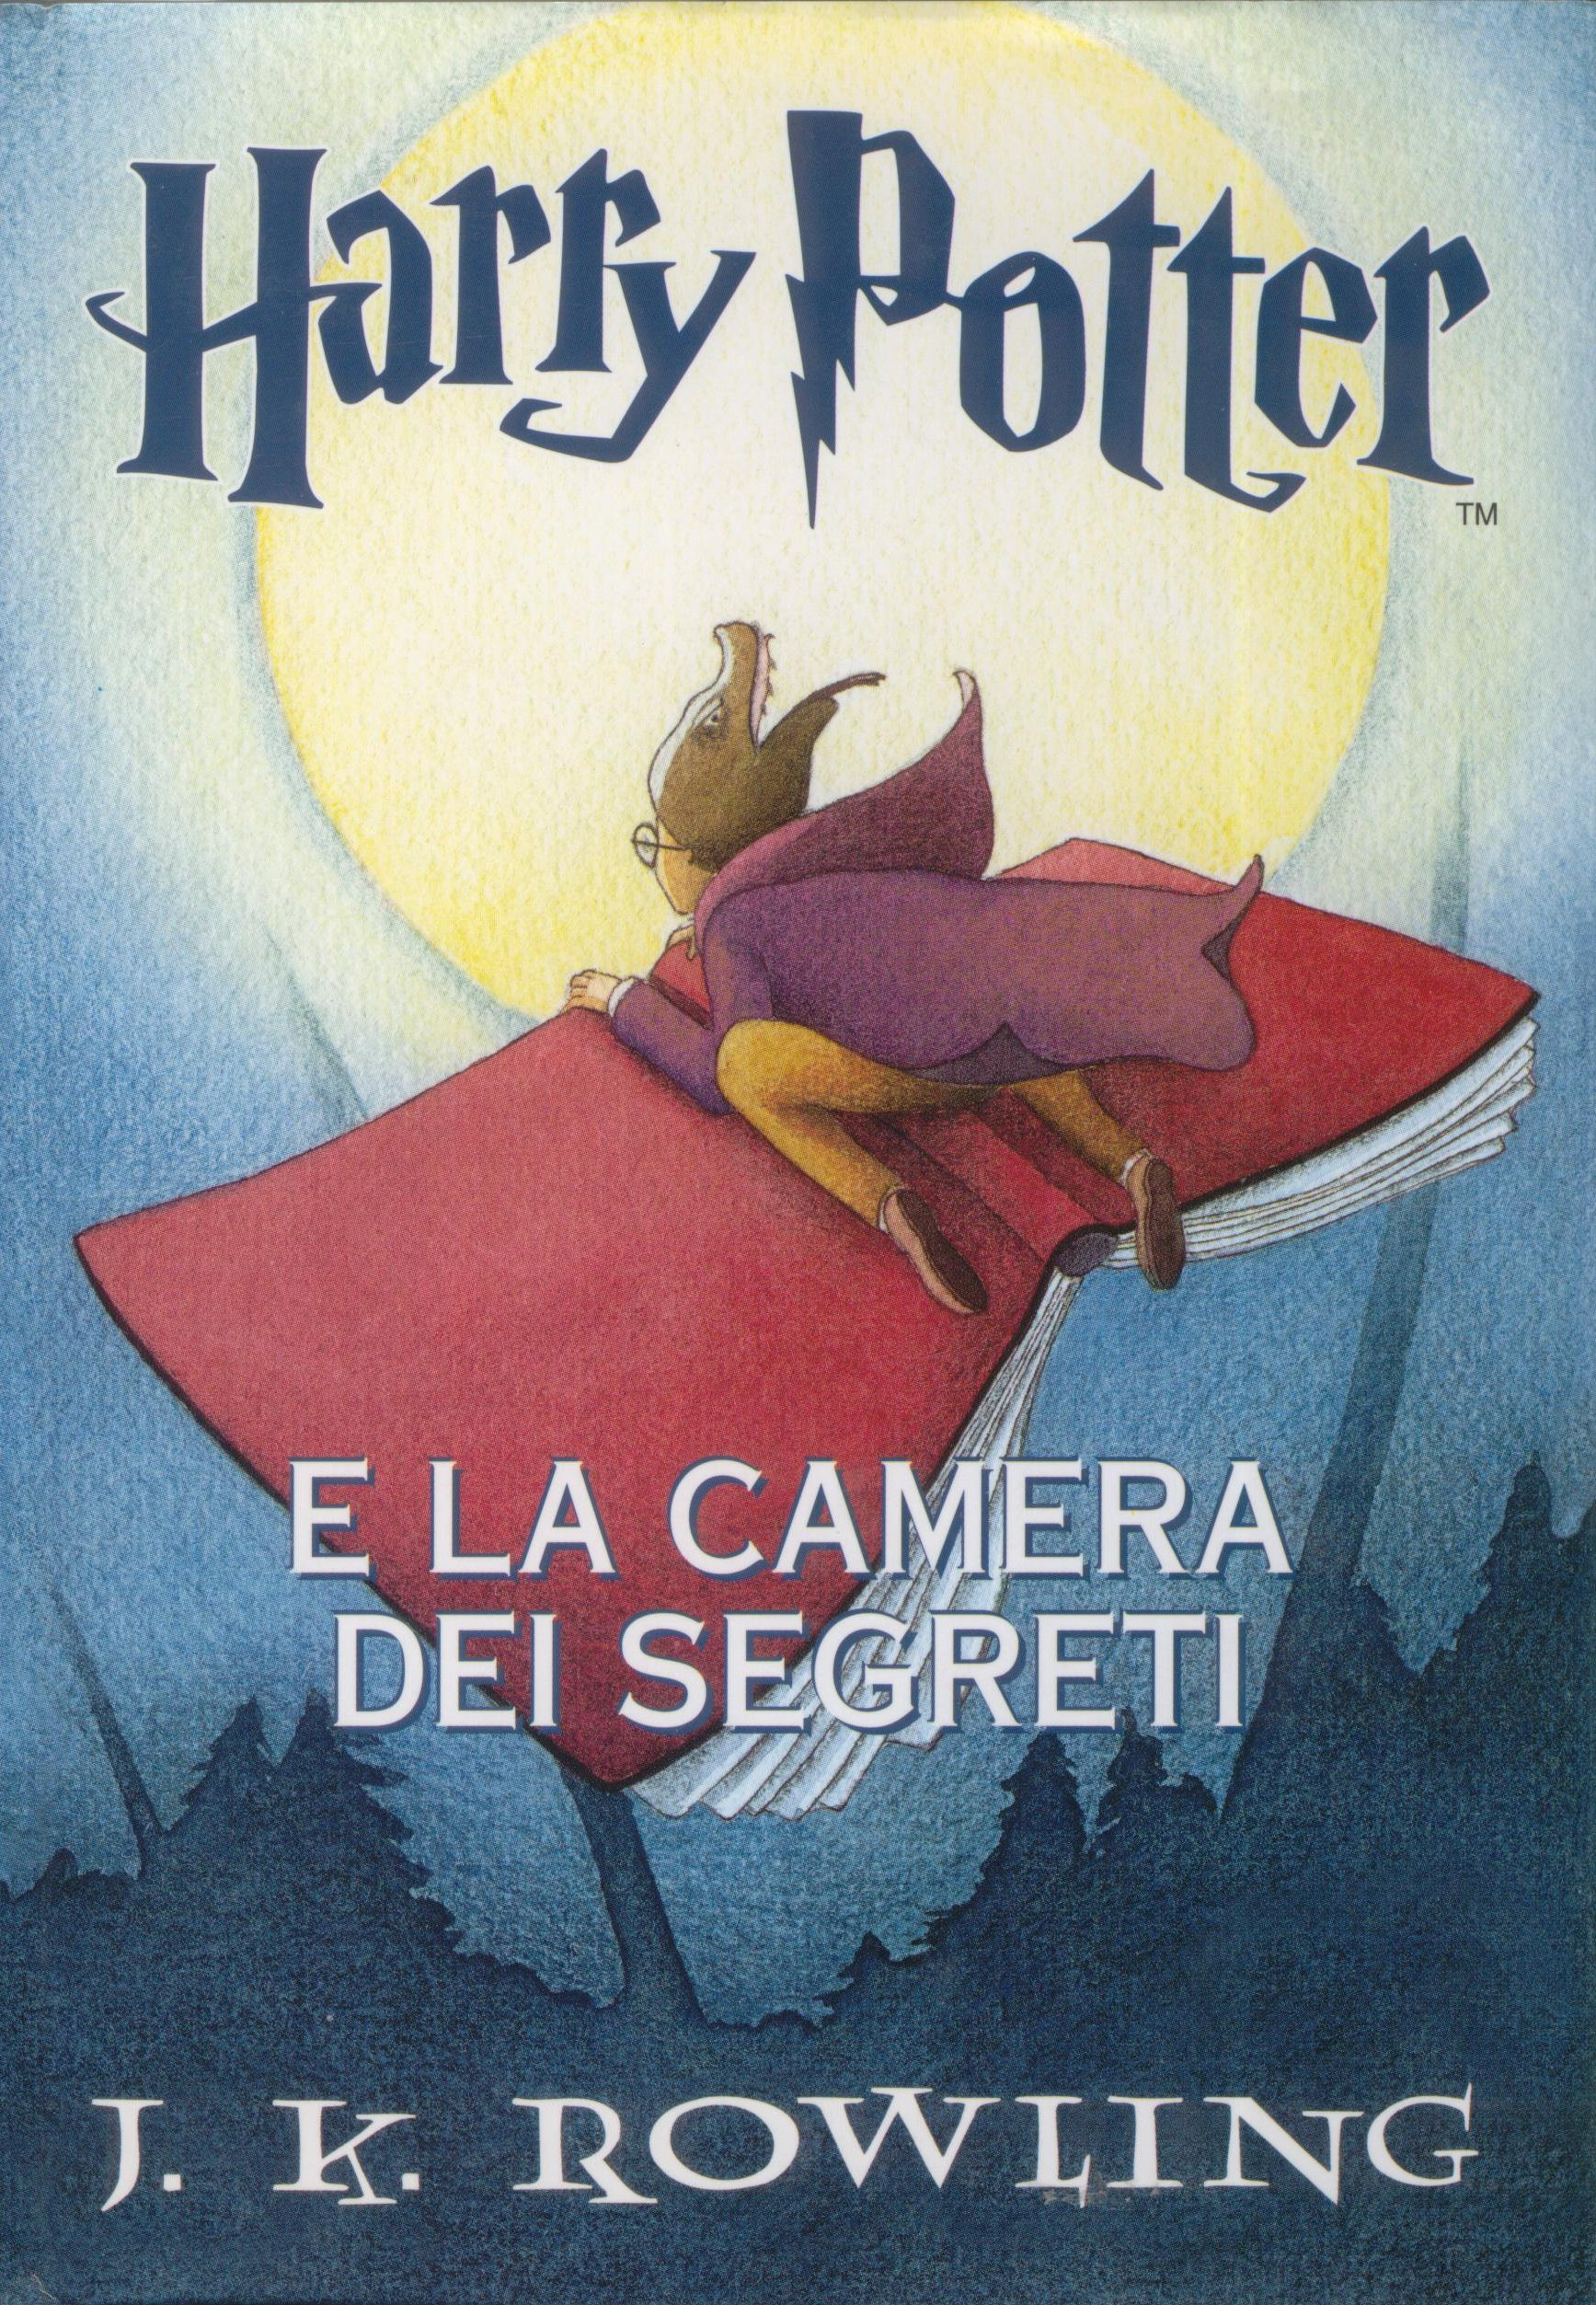 Harry Potter e la camera dei segreti - J. K. Rowling - 966 recensioni ...